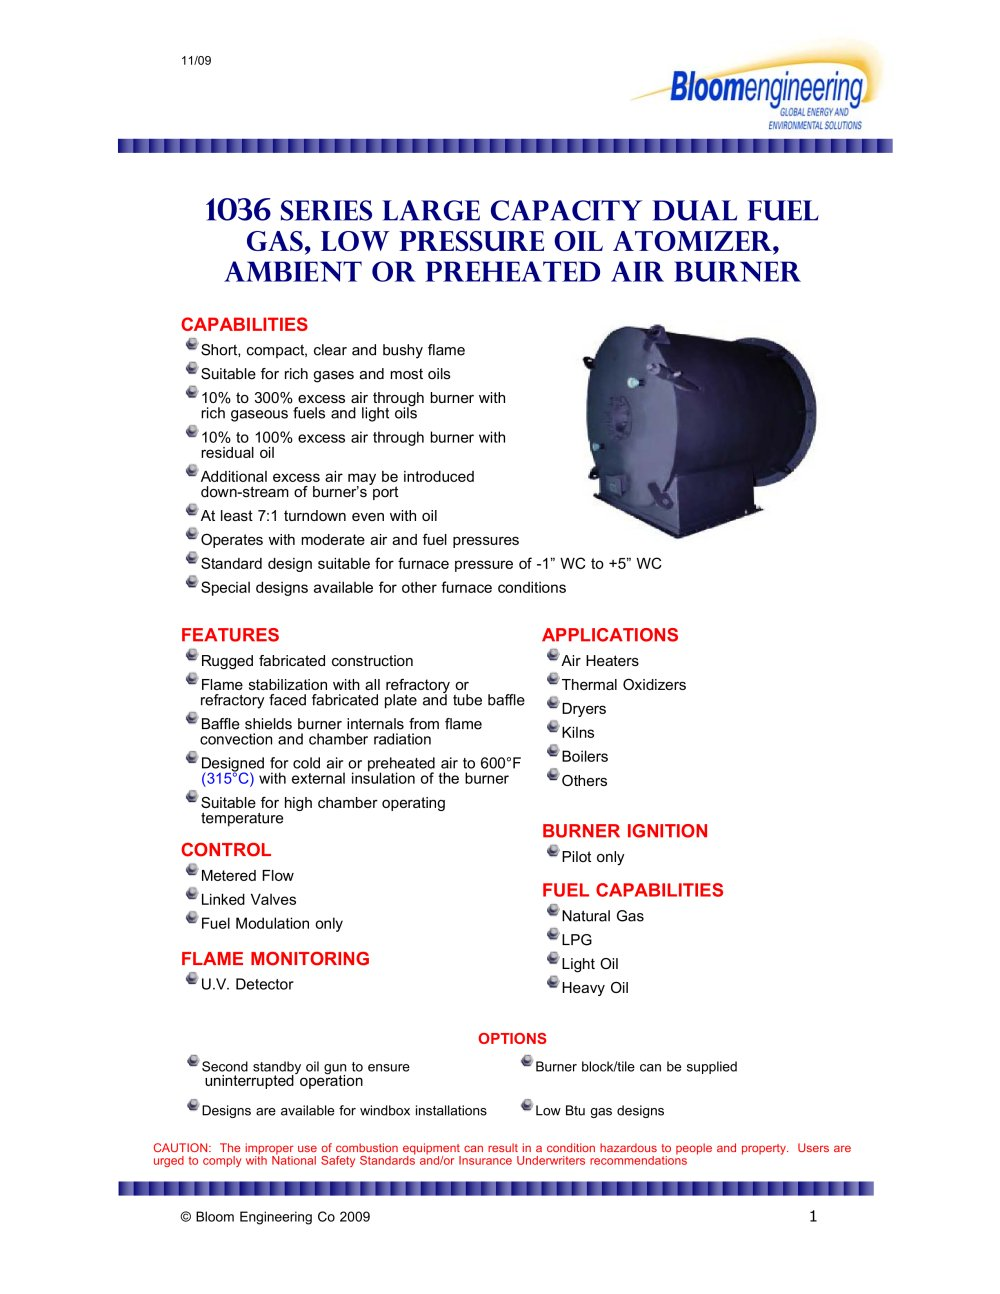 1036 SERIES LARGE CAPACITY DUAL FUEL GAS LOW PRESSURE OIL ATOMIZER AMBIENT OR PREHEATED AIR BURNER - 1 / 3 Pages  sc 1 st  Catalogues Directindustry & 1036 SERIES LARGE CAPACITY DUAL FUEL GAS LOW PRESSURE OIL ... azcodes.com